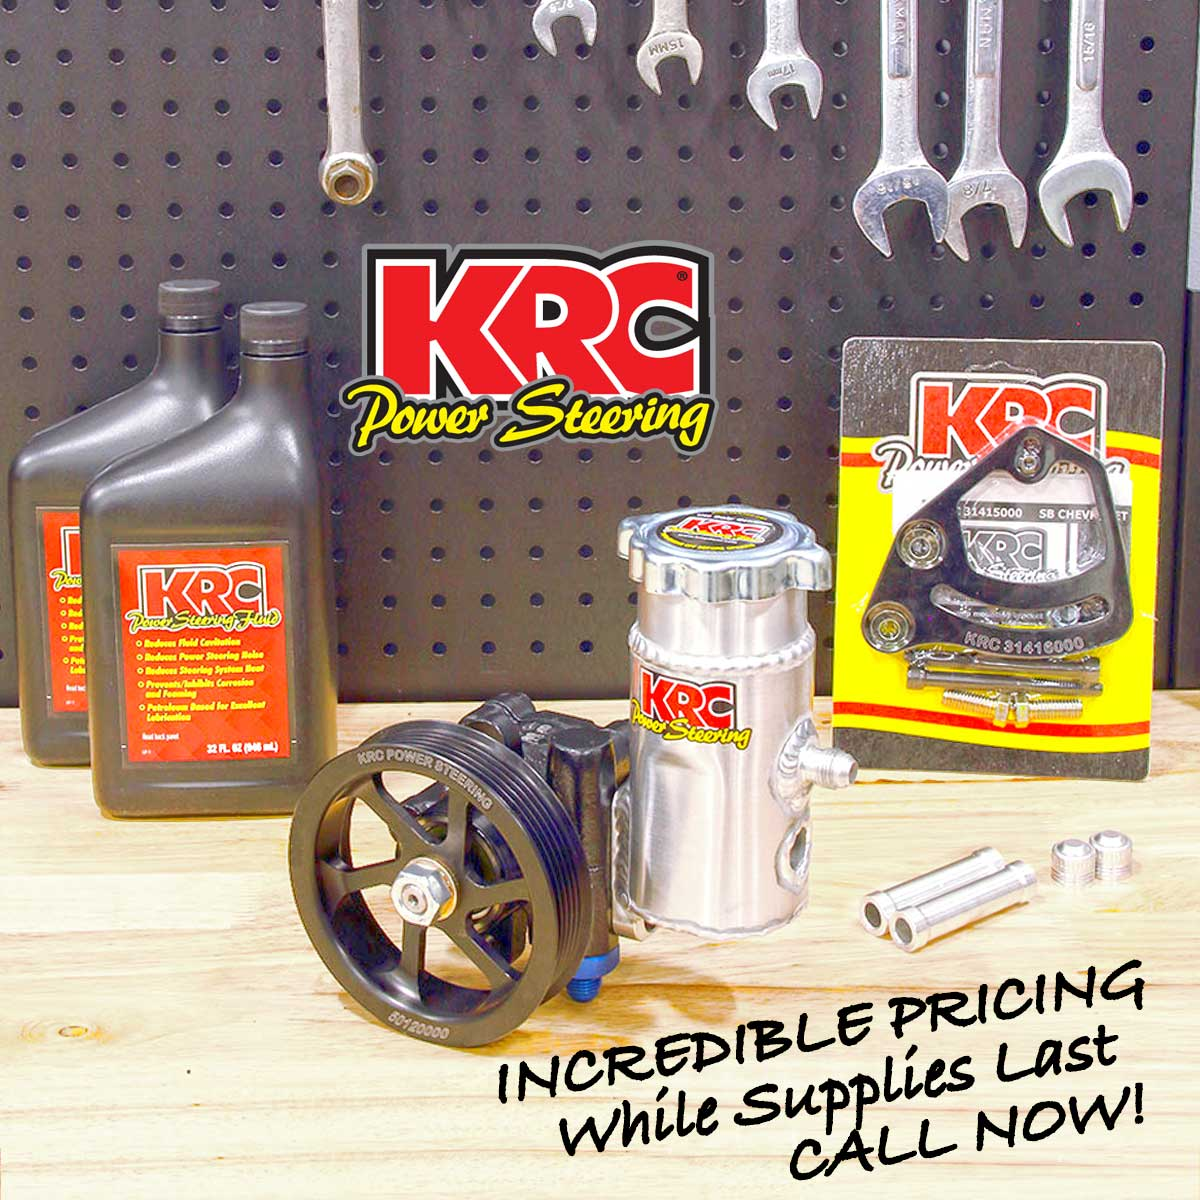 KRC Power Steering Pump Summer Deals!